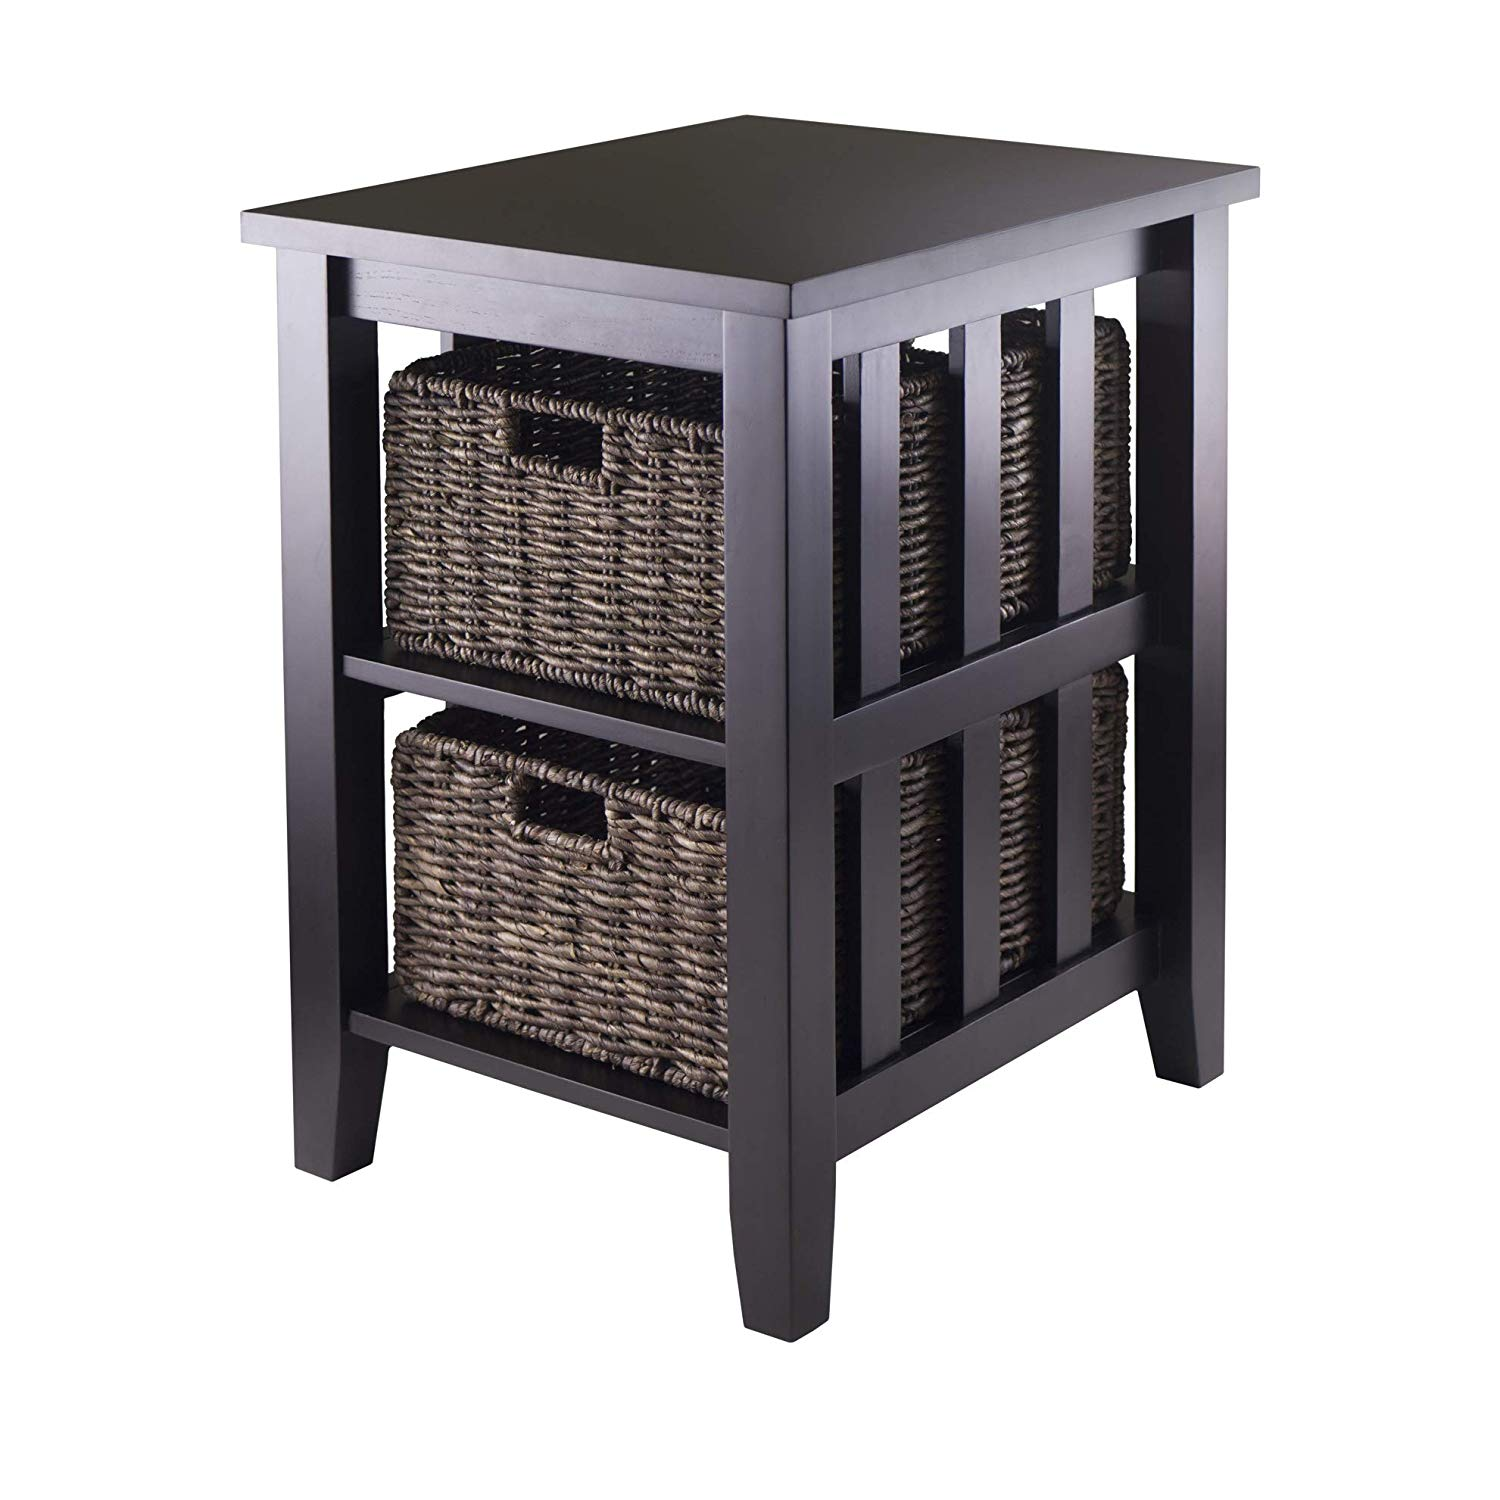 winsome morris side table with foldable basket wicker storage accent kitchen dining target wood stump contemporary dorm room bar height bistro set pier type round sheesham